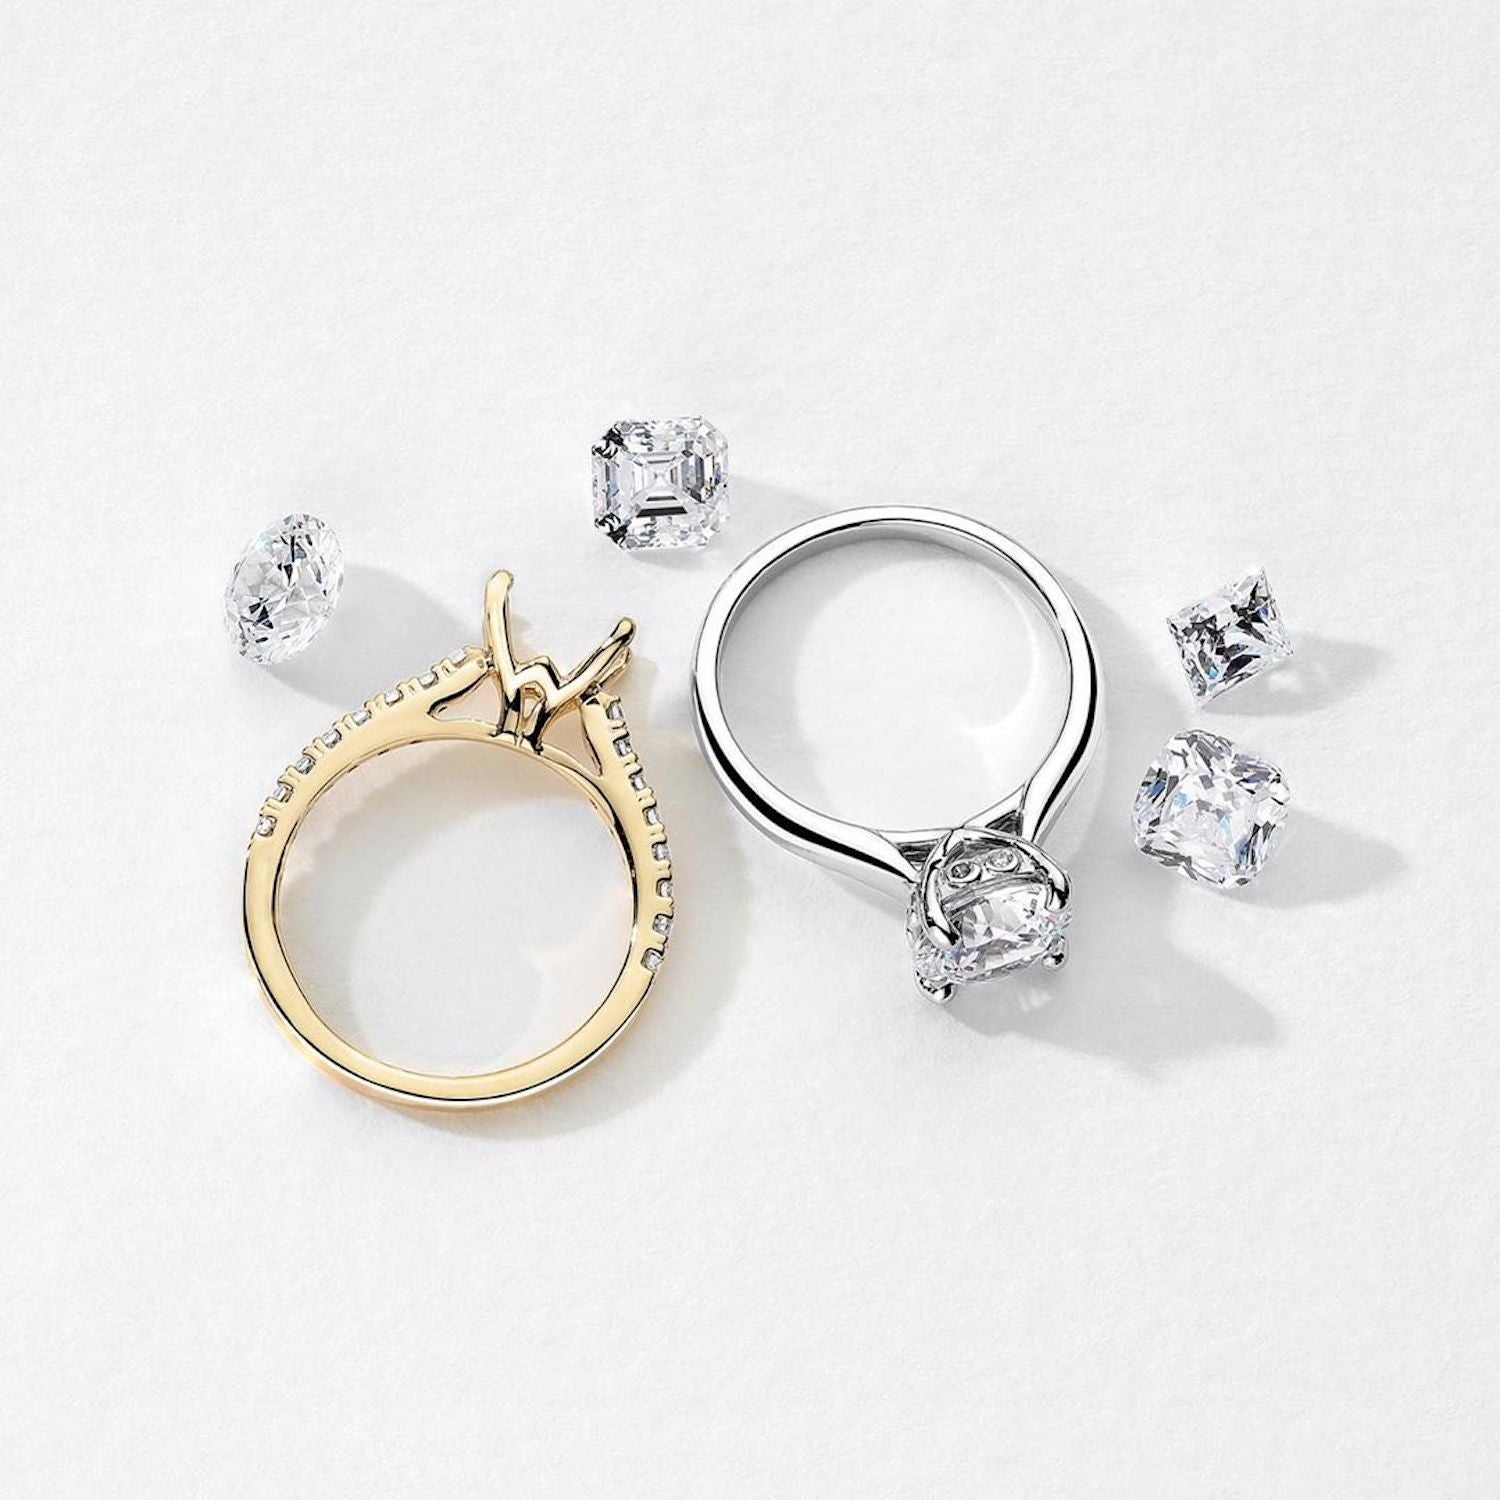 yellow gold and white gold engagement ring